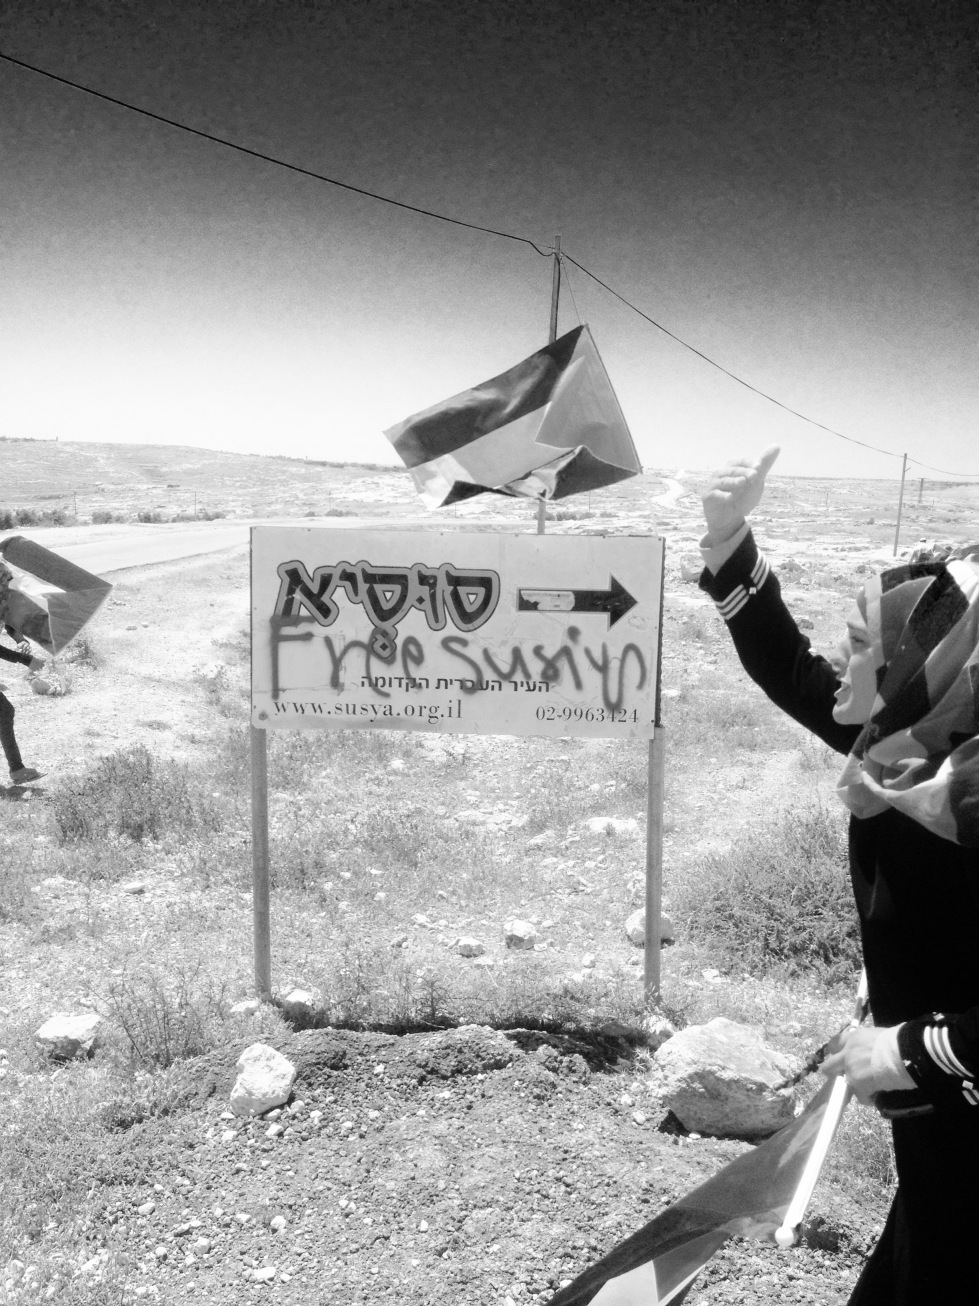 The march headed towards the Archeological Site of Susiya's Ancient Synagogue, from which the current Susiya's residents had been expelled in 1986, and are now barred from entering